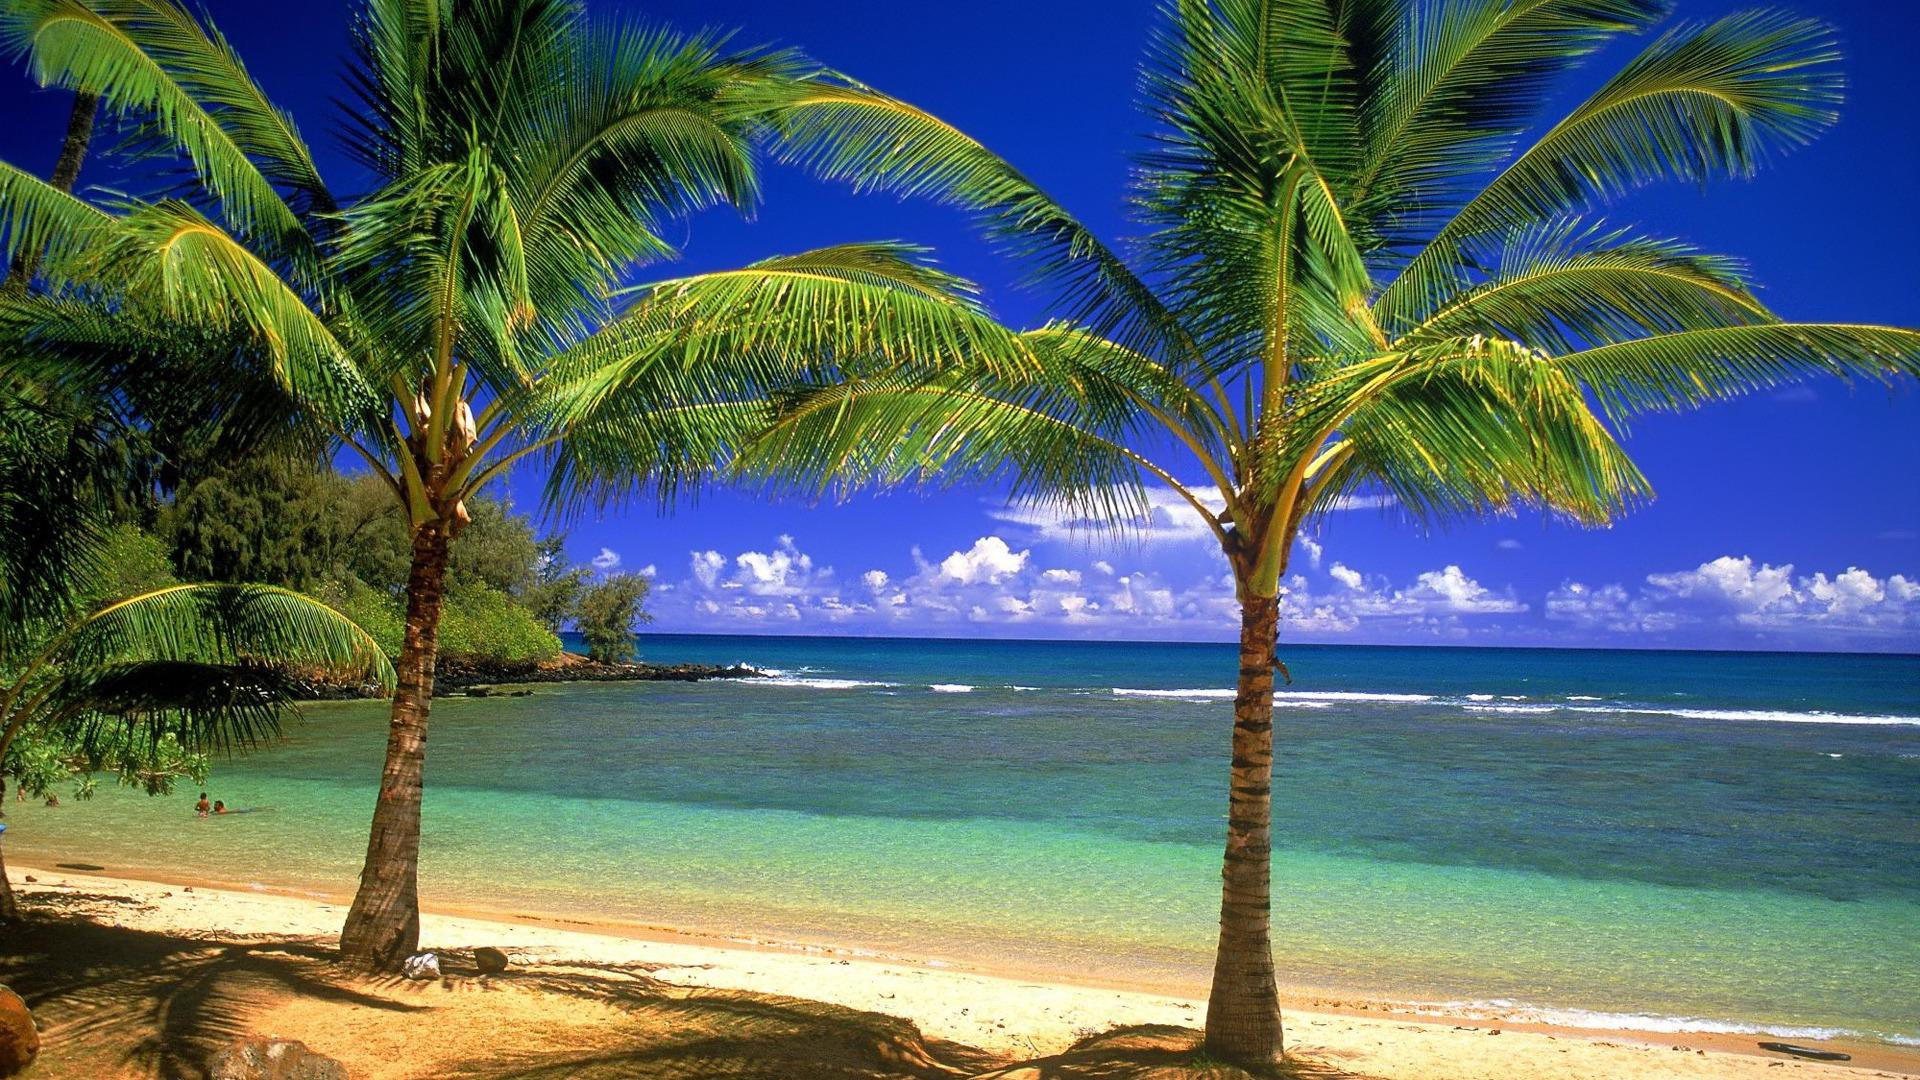 beach wallpapers beach hd wallpapers beach hd wallpapers beach hd